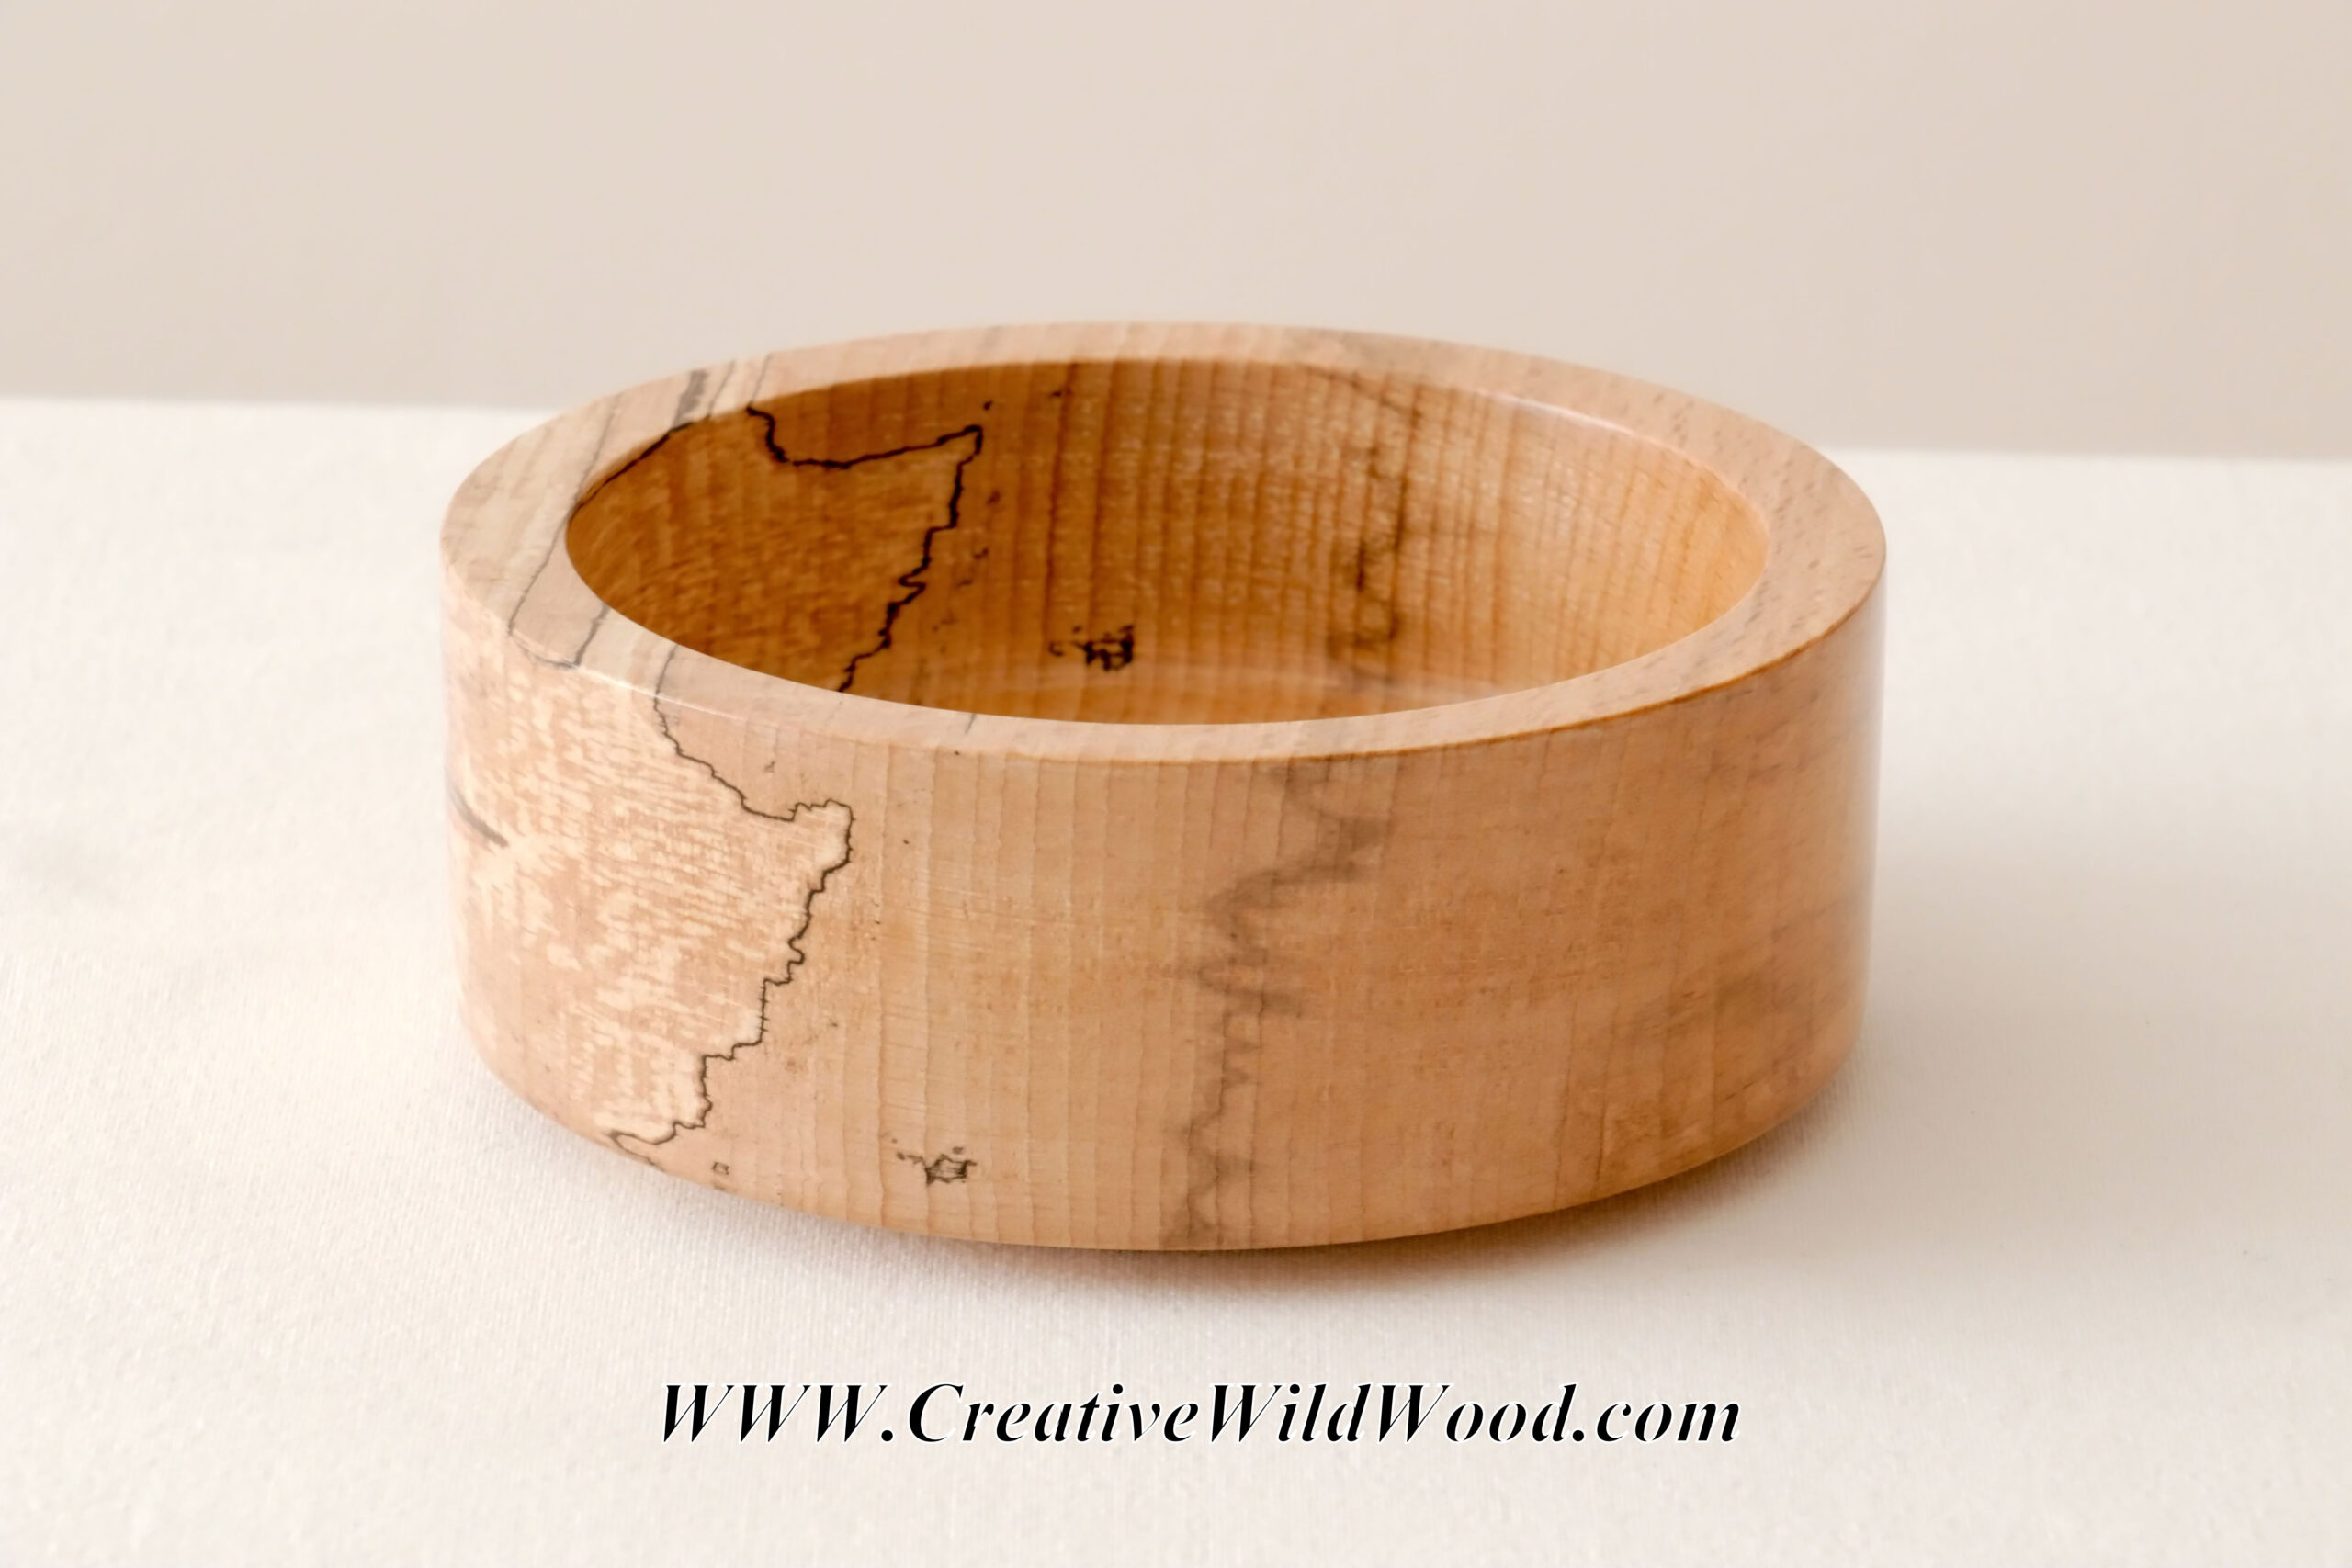 Spalted Ash Snack Bowl